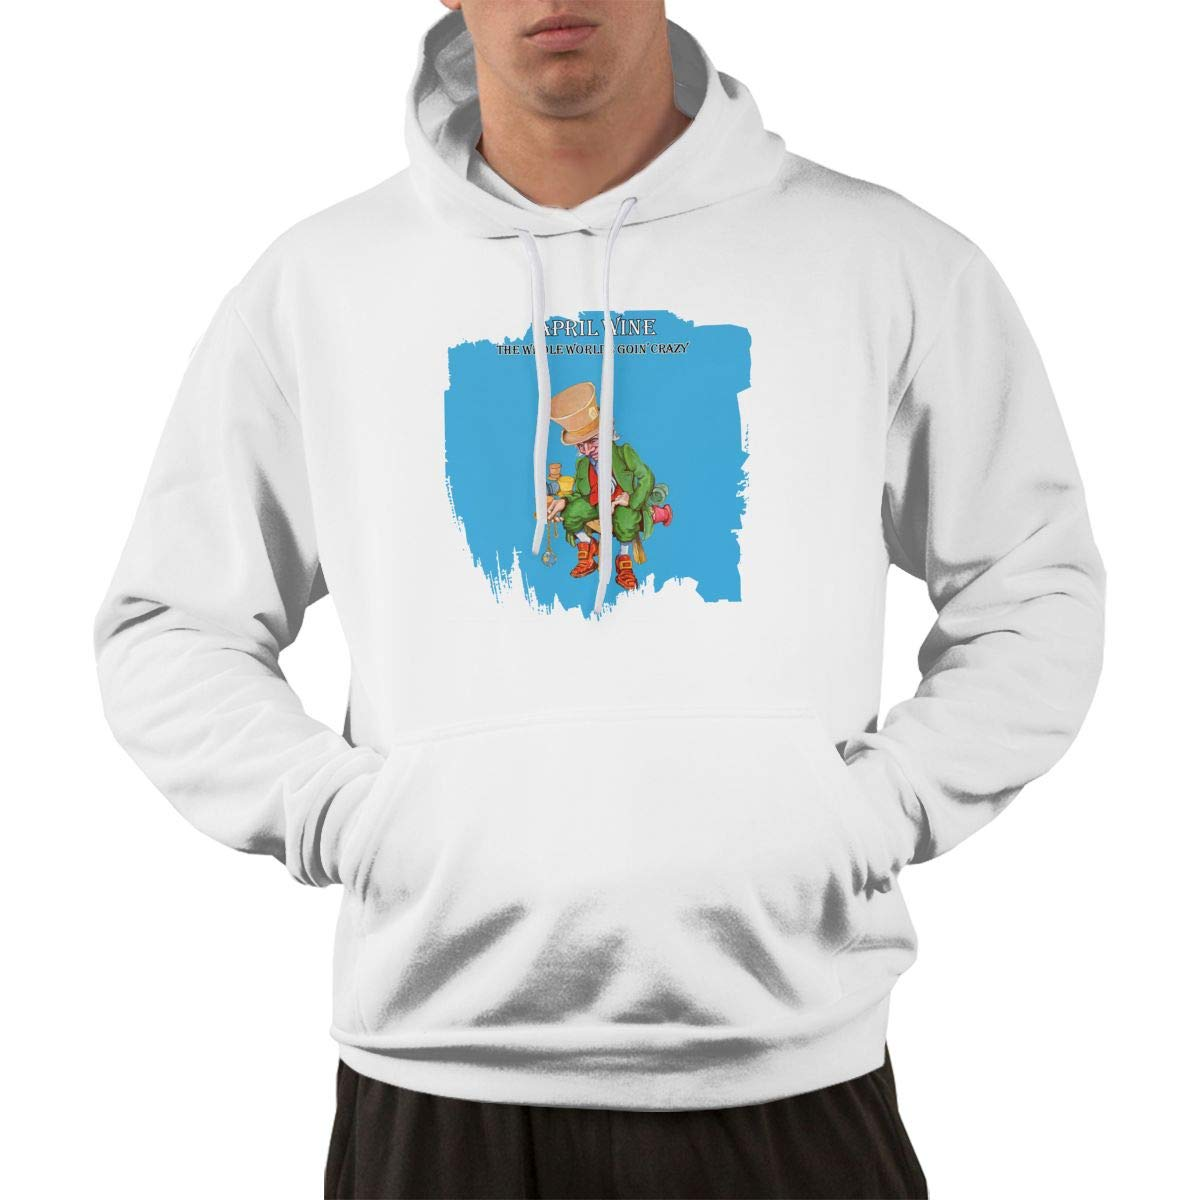 Erman Pullover Warm Print April Wine Hooded Shirts With Pocket S